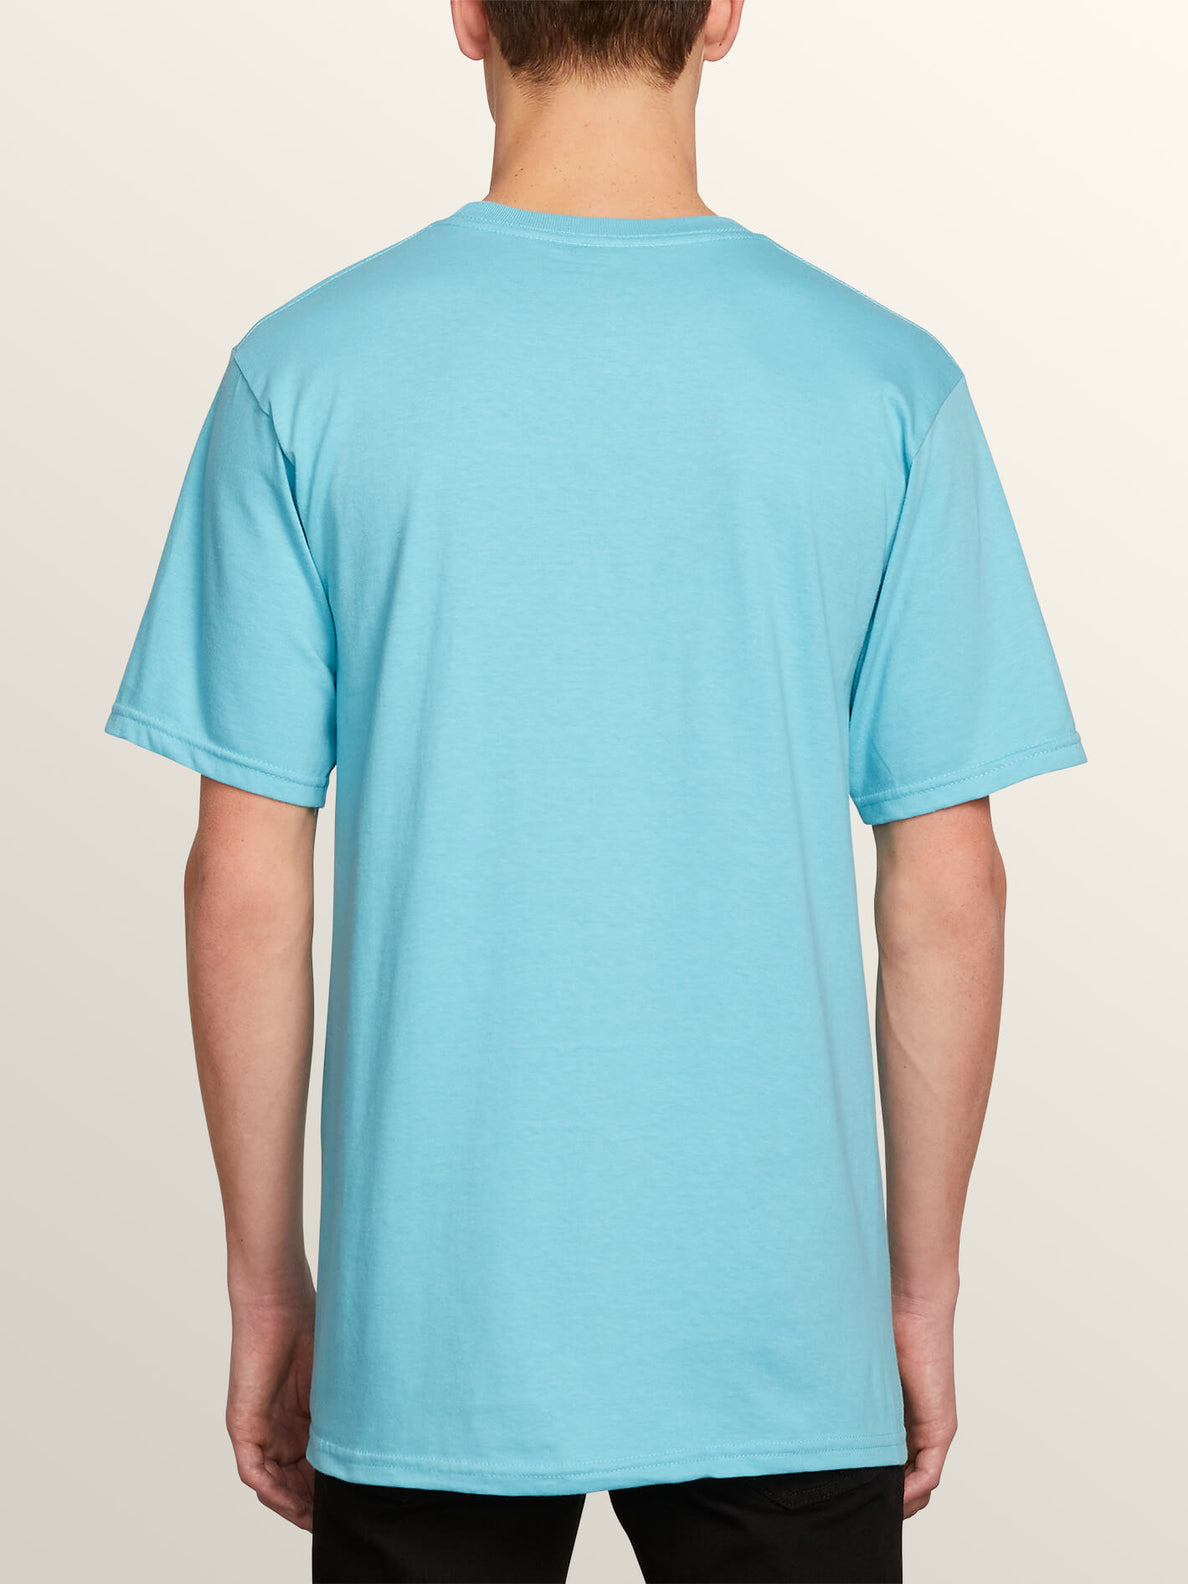 Speak To You Short Sleeve Tee In Blue Bird, Back View